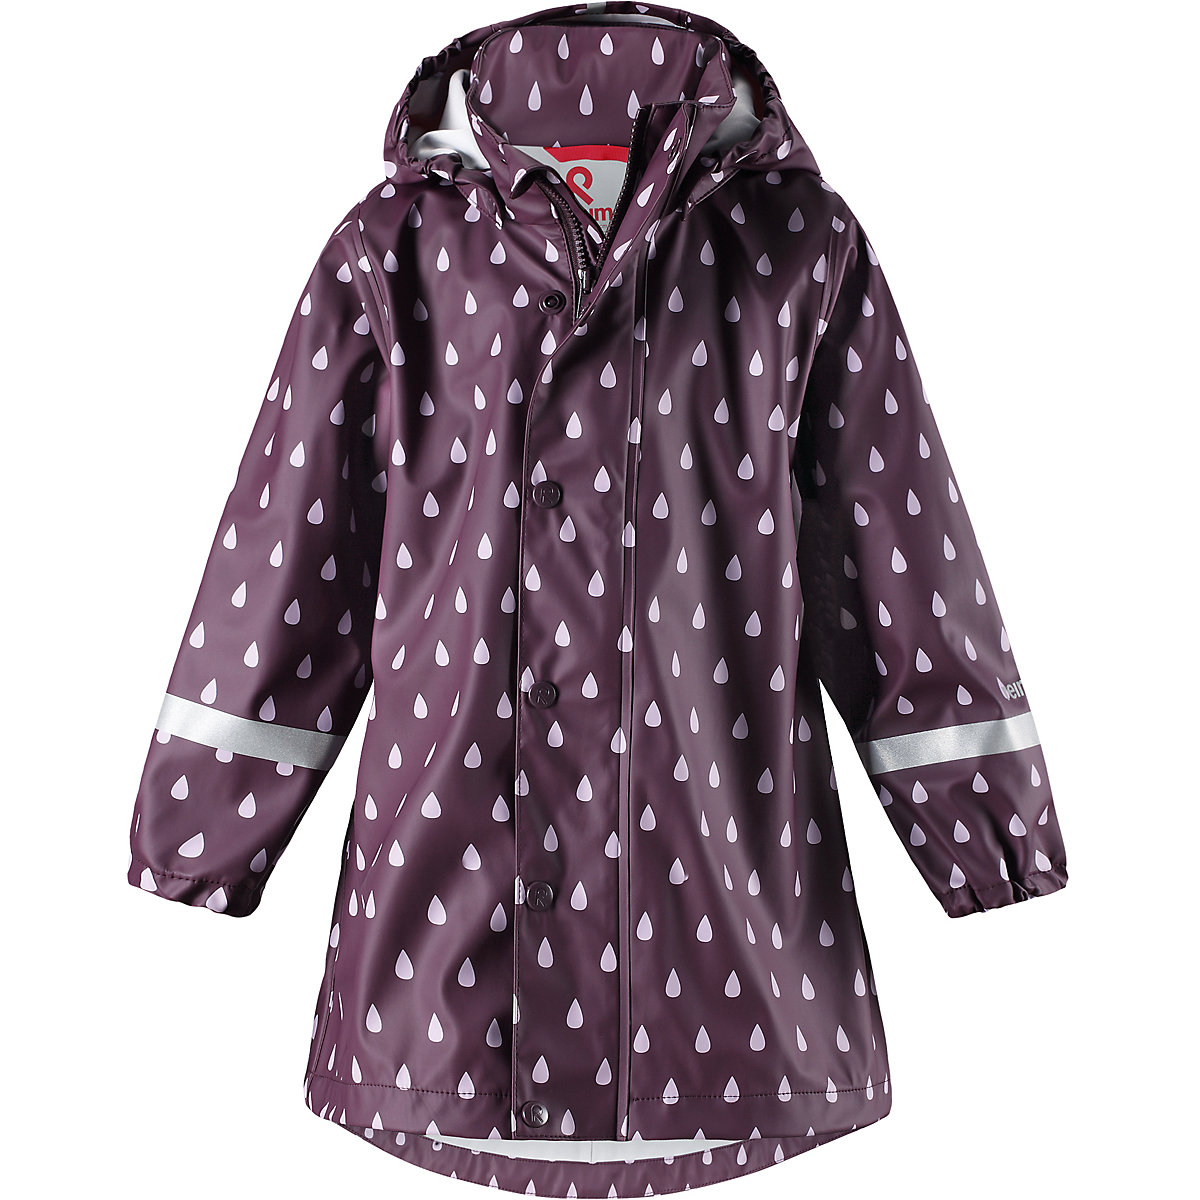 REIMA Jackets 8689220 for girls polyester winter  fur clothes girl 2016 new style popular 18 inch american girl doll pajamas clothes dress for christmas gift abd 072